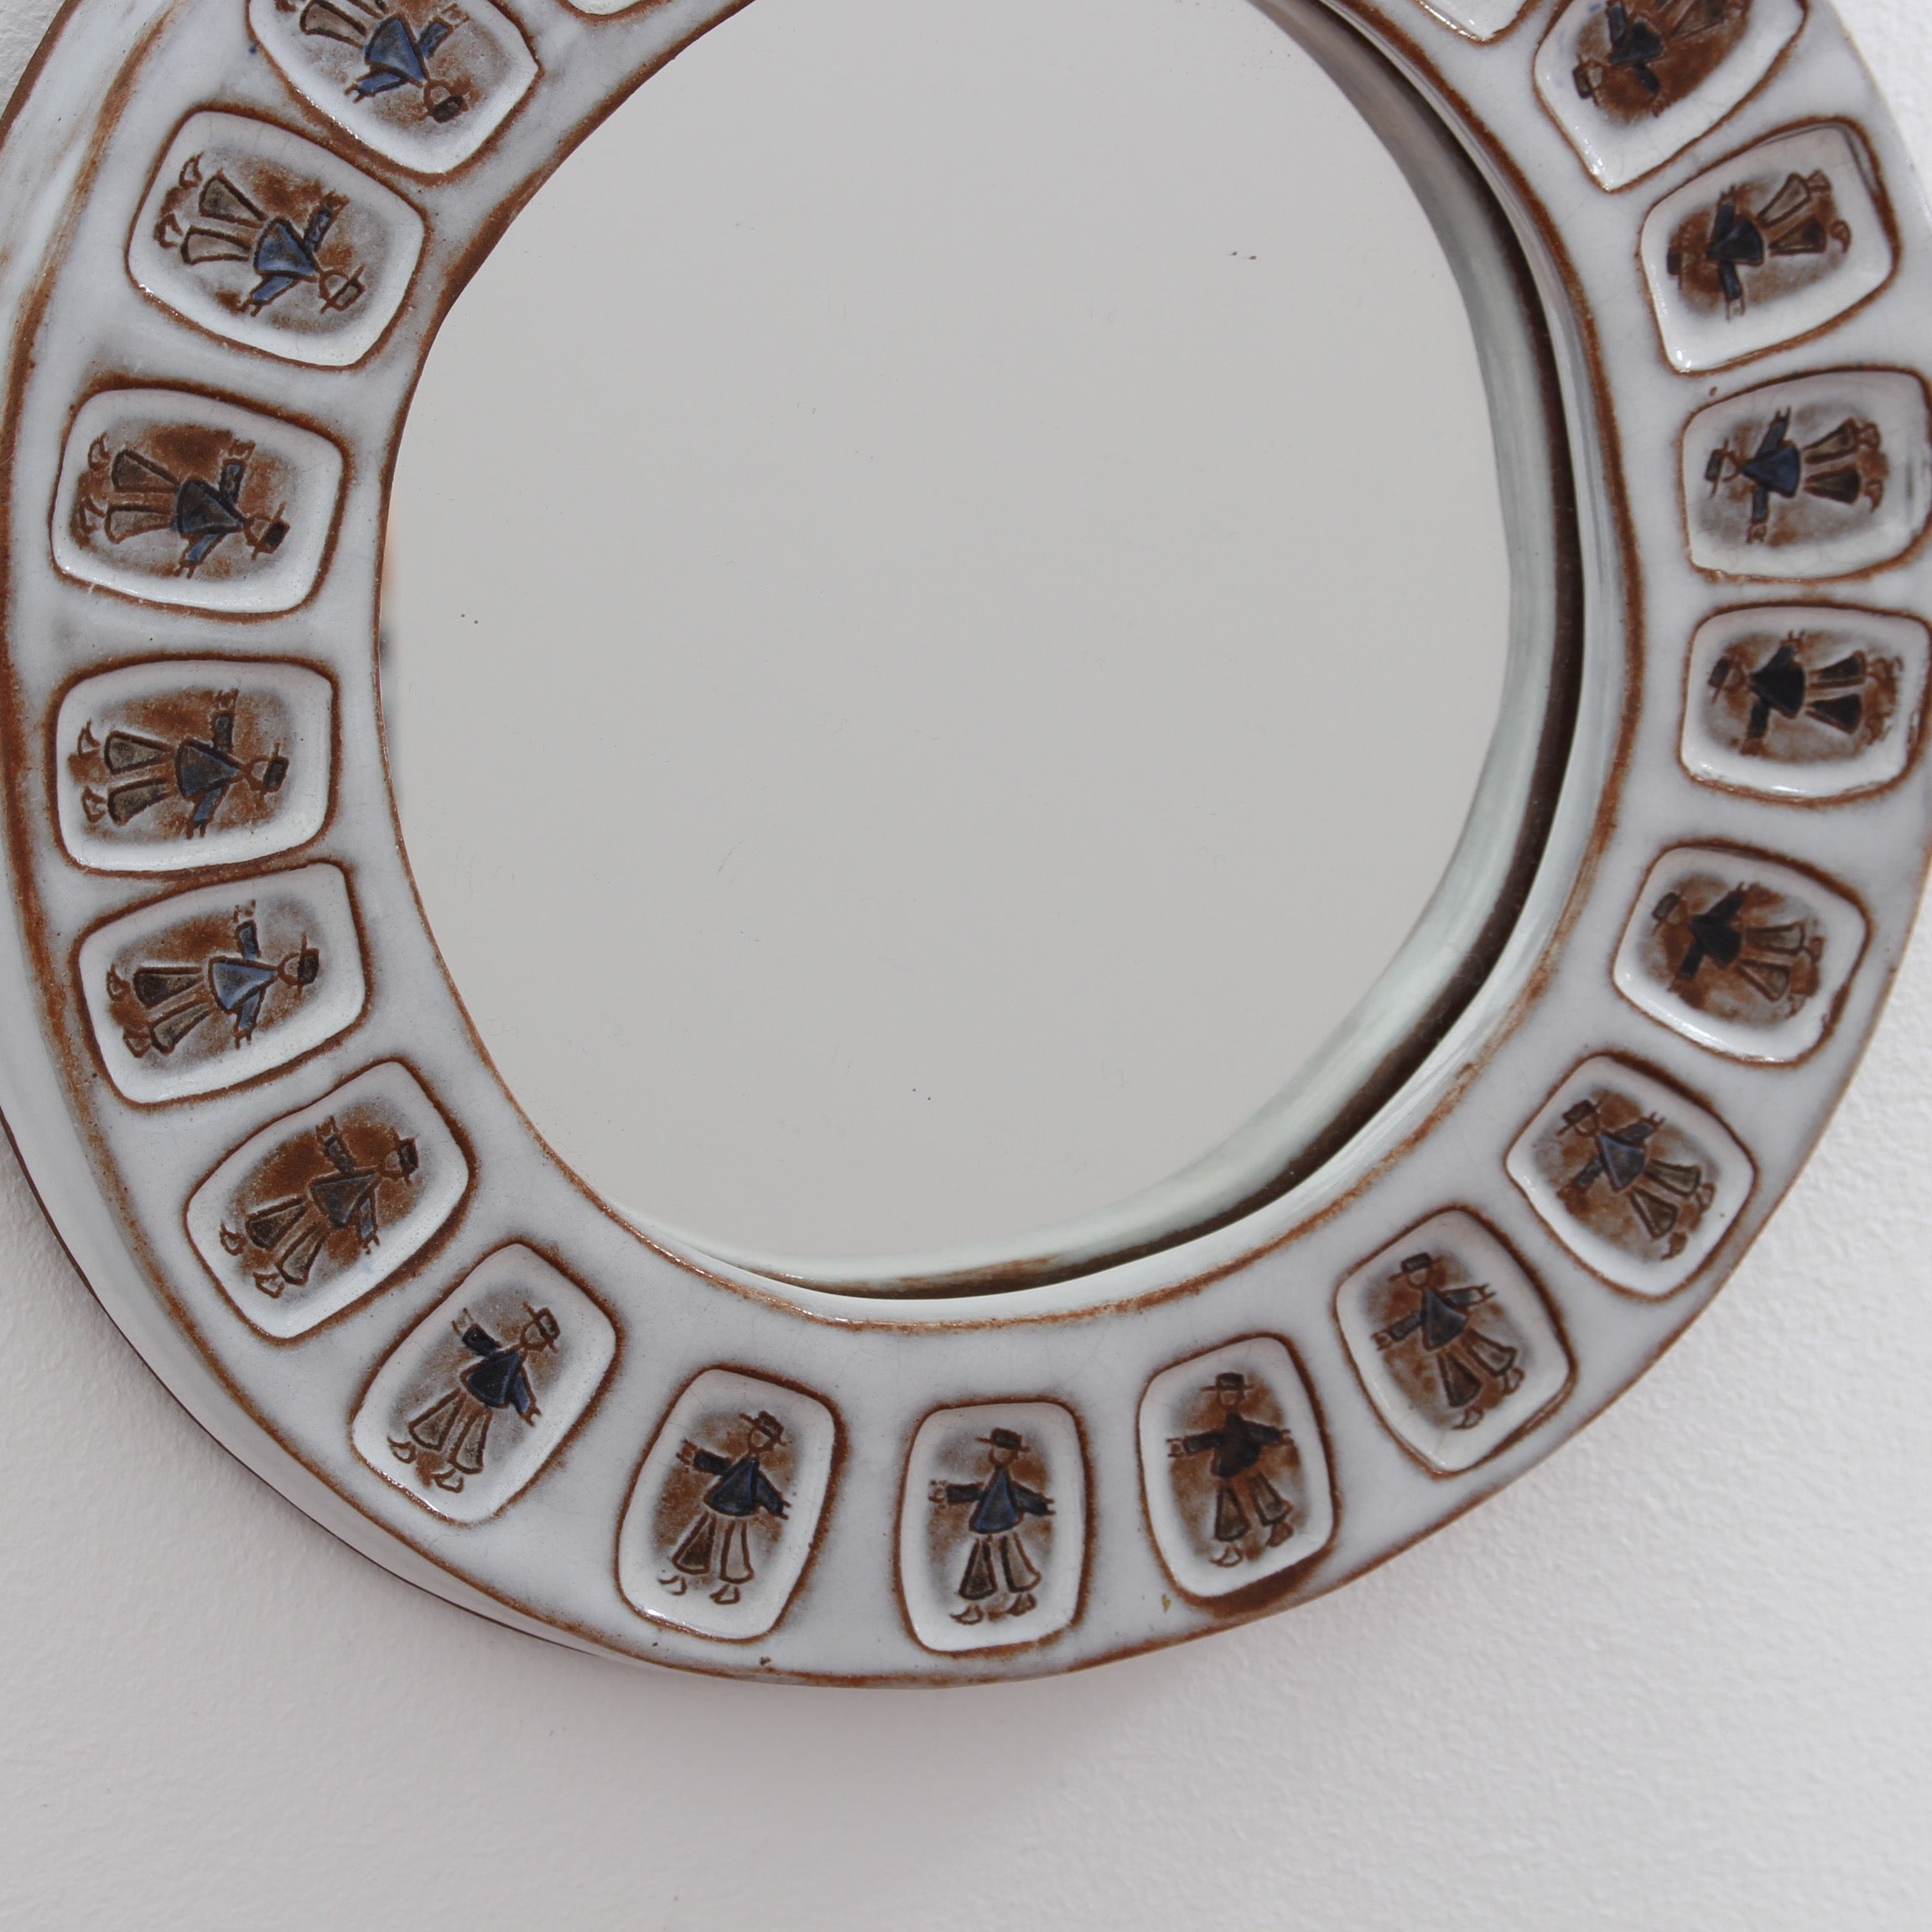 Ceramic Decorative Wall Mirror with Breton Motif (circa 1970s)